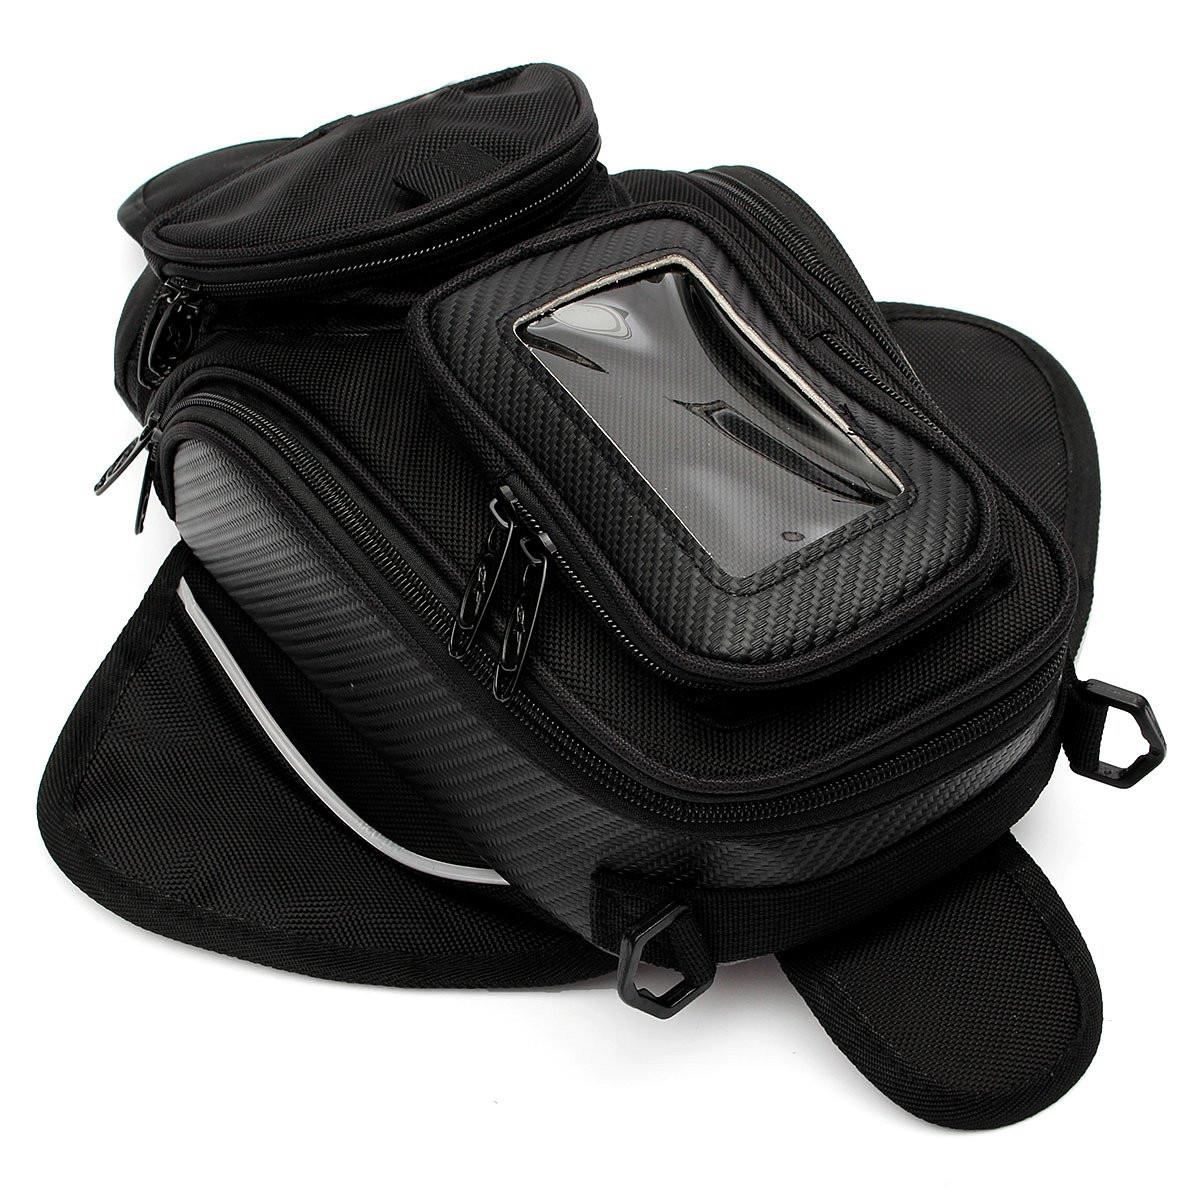 1 Piece Universal Black Oil Fuel Tank Bag Magnetic Motorcycle Motorbike Oil Fuel Tank Bag Saddle Bag east fuel tank cover universal type